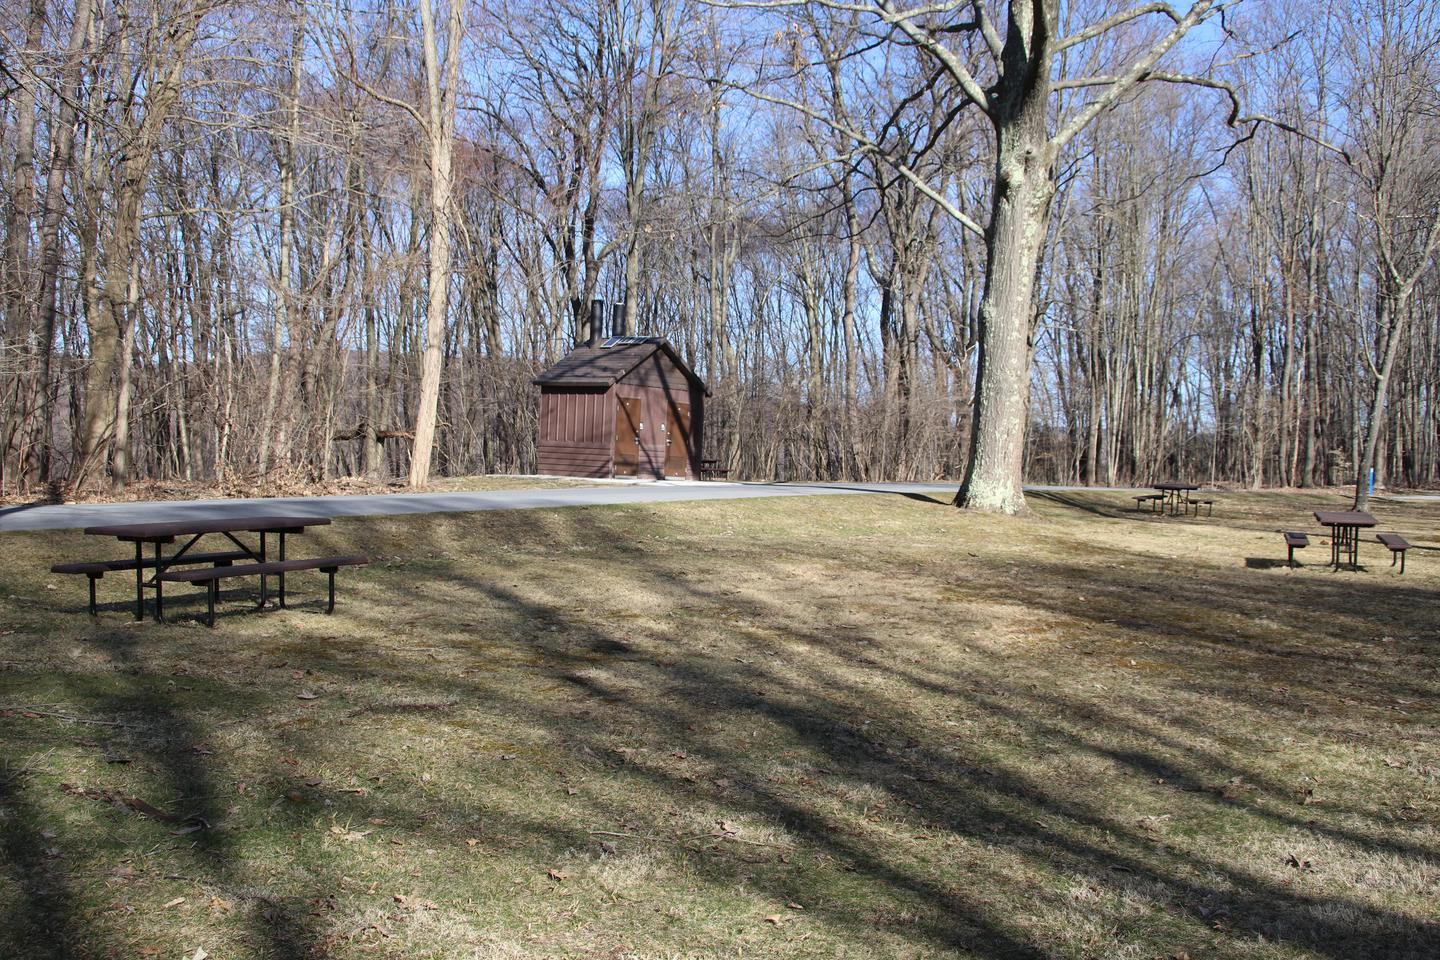 The picnic area at Johnstown Flood National Memorial